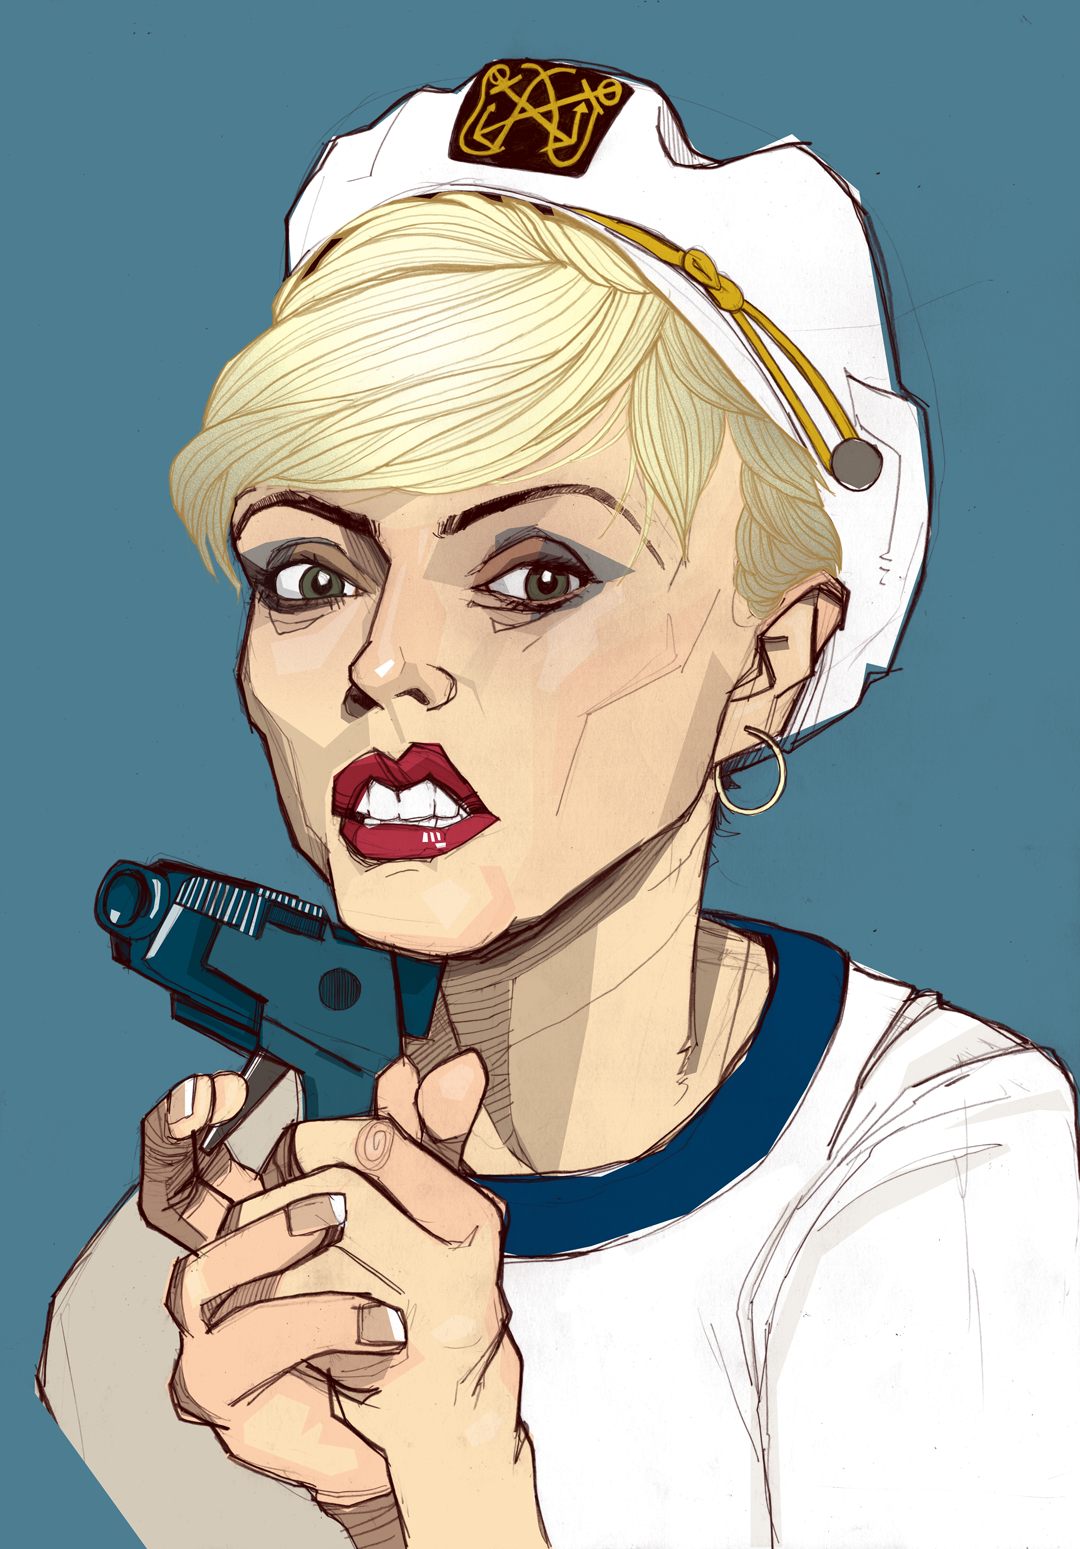 Portrait of Debbie Harry from Blondie